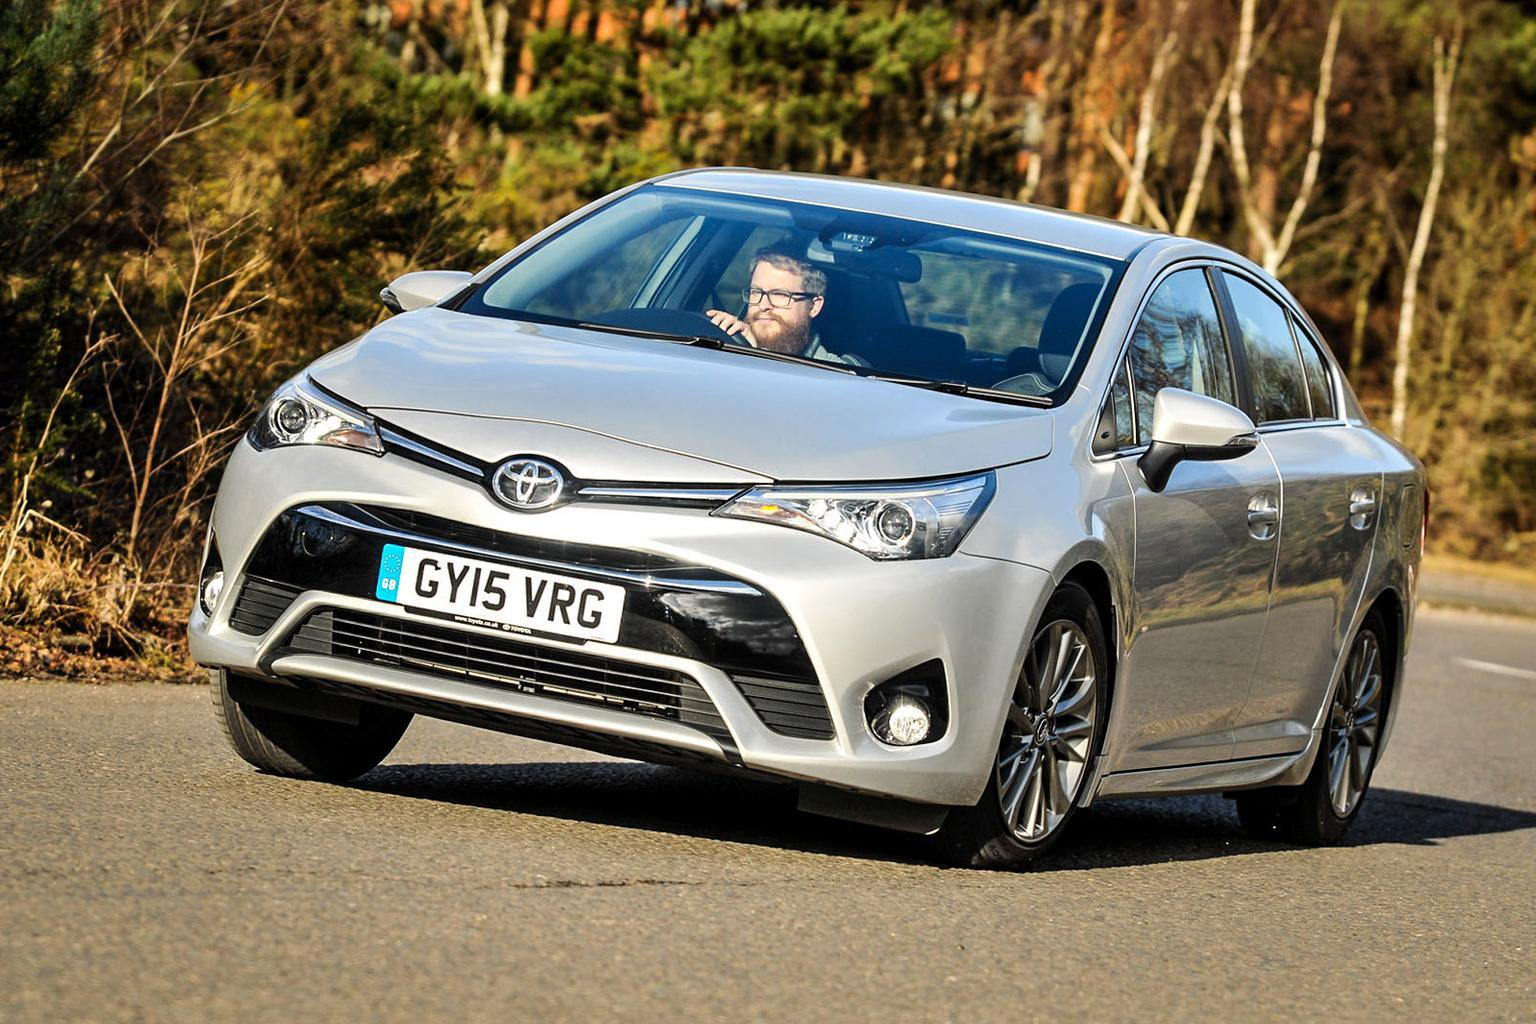 2016 Toyota Avensis 2.0 D-4D review